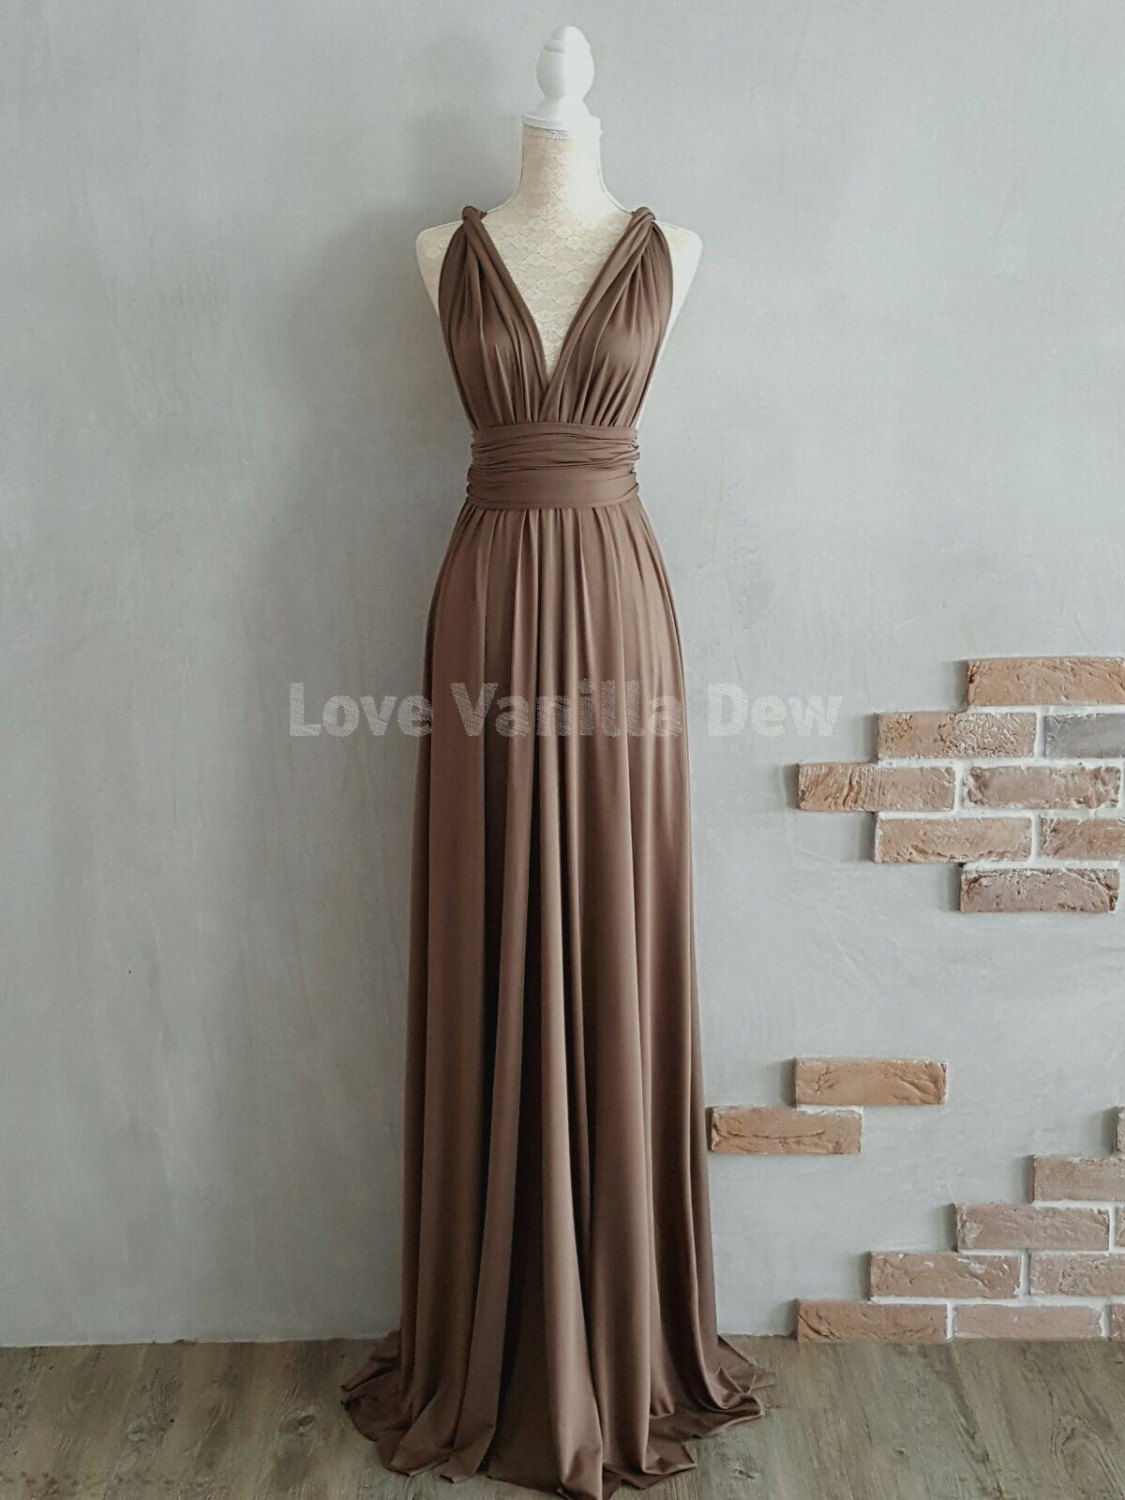 Convertible dresses infinity dress wrap champagne long champagne convertible dresses infinity dress wrap champagne long bridesmaid dress formal wedding ombrellifo Gallery